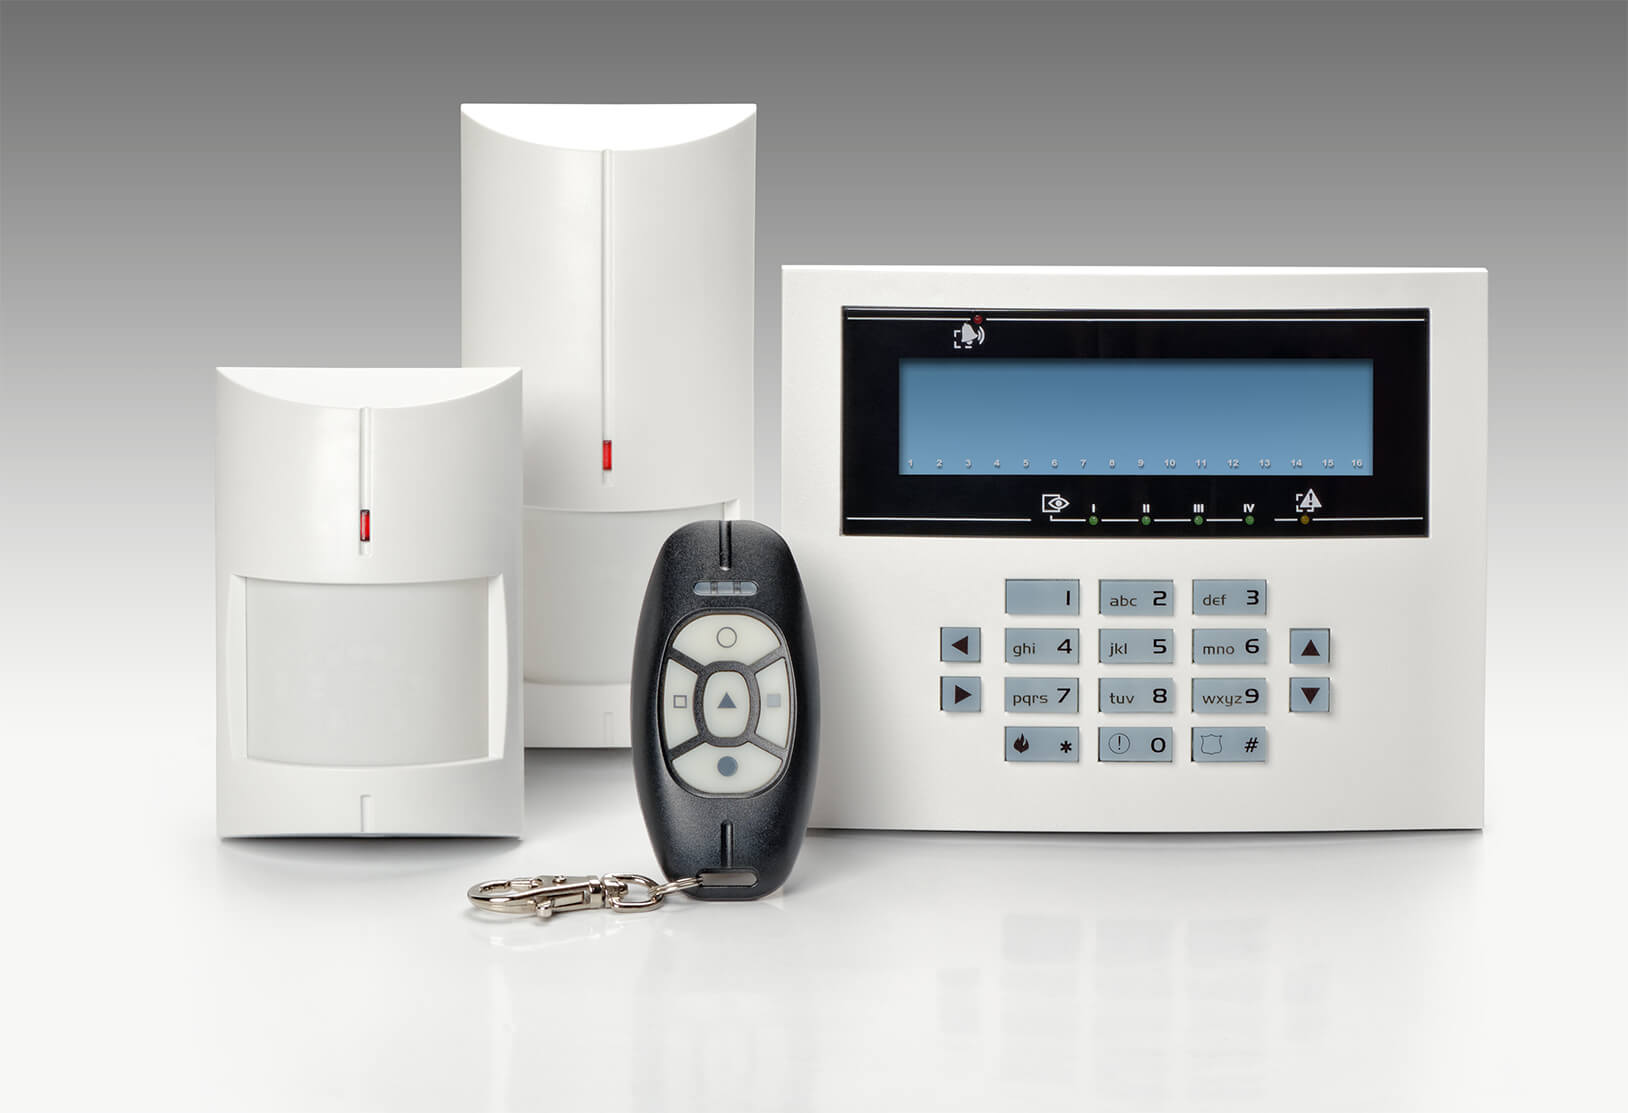 Commercial Burglar Alarms For Business in Hampstead Garden Suburb NW11  - Local Hampstead Garden Suburb NW11 burglar alarm company.Call 02078872244 - Dedicated to Safety & Security. Companies, shops and homes ..